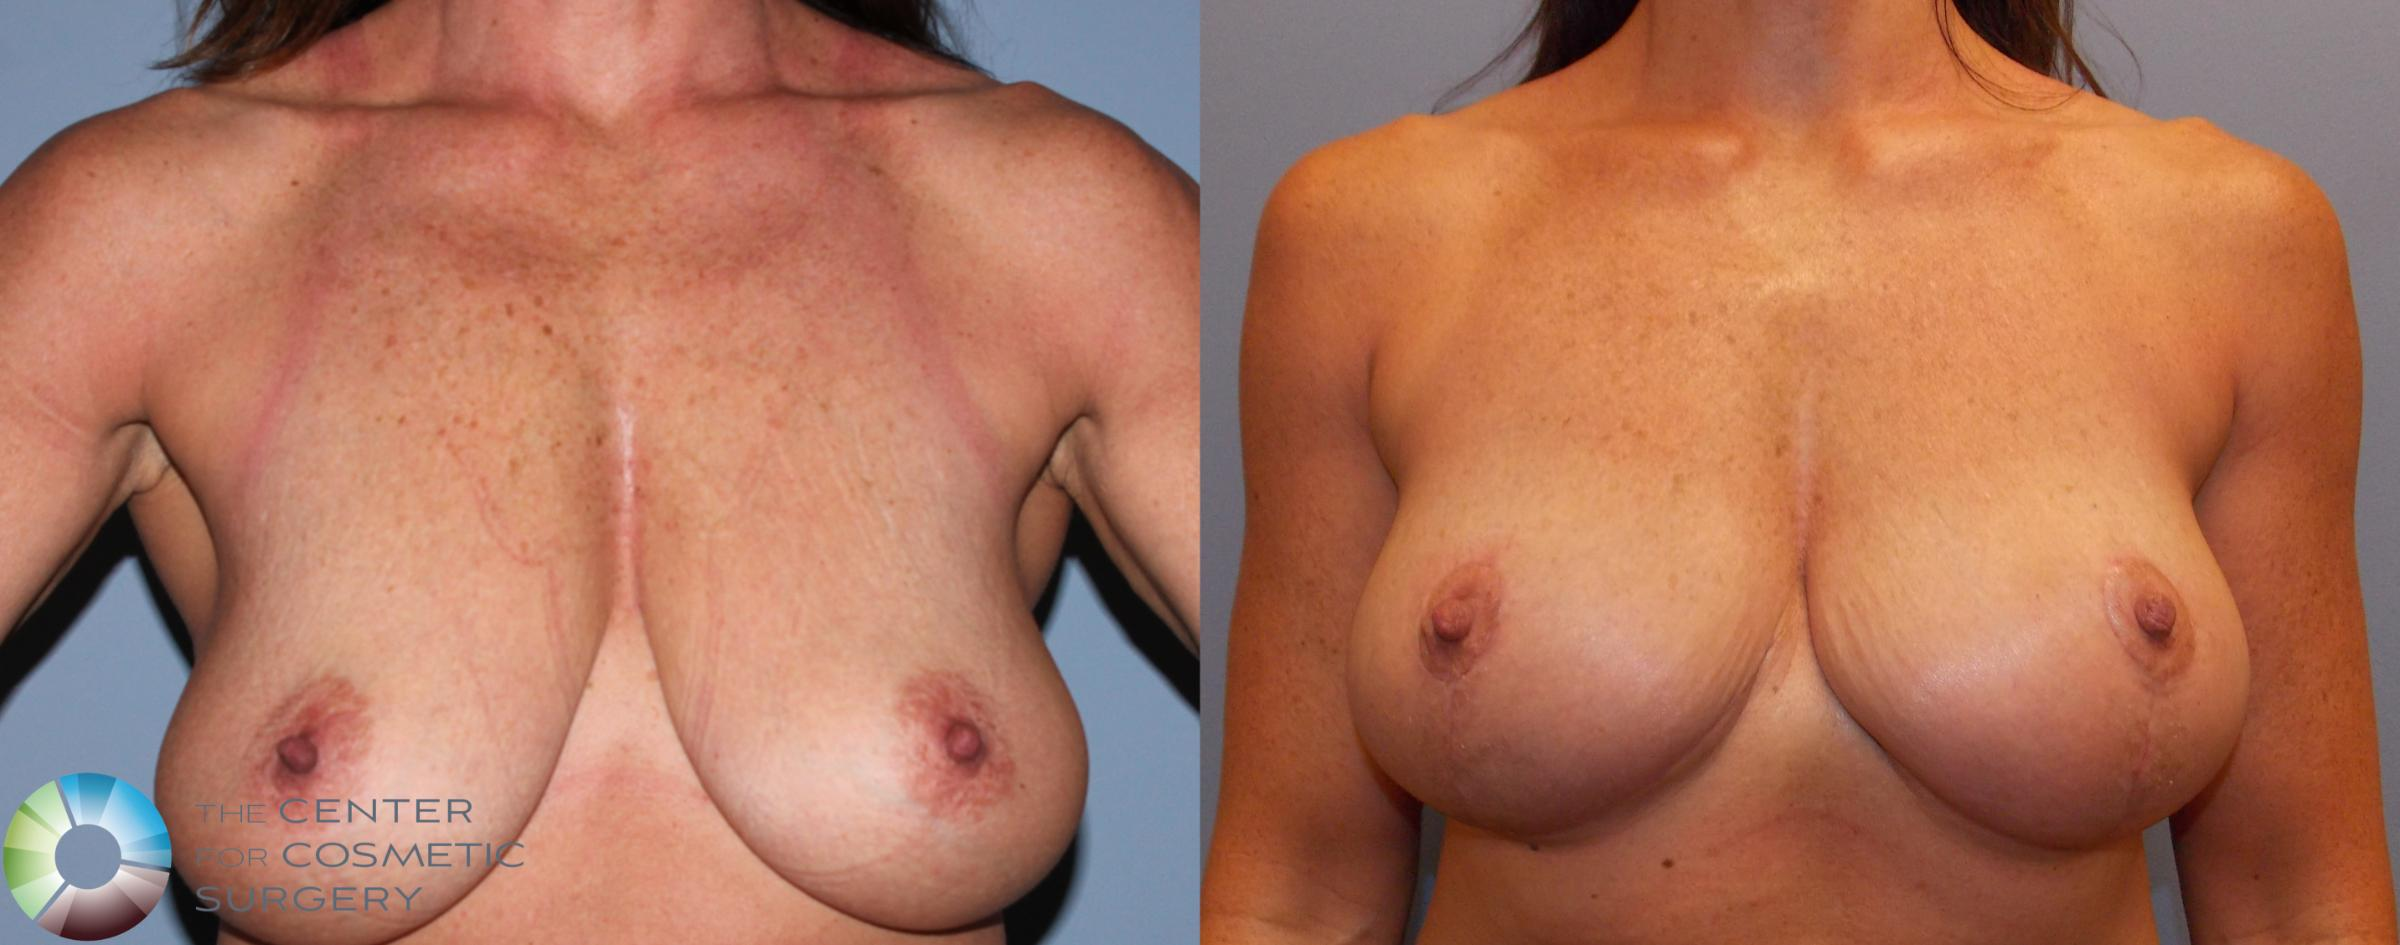 Breast Lift Case 868 Before & After View #1 | Golden, CO | The Center for Cosmetic Surgery